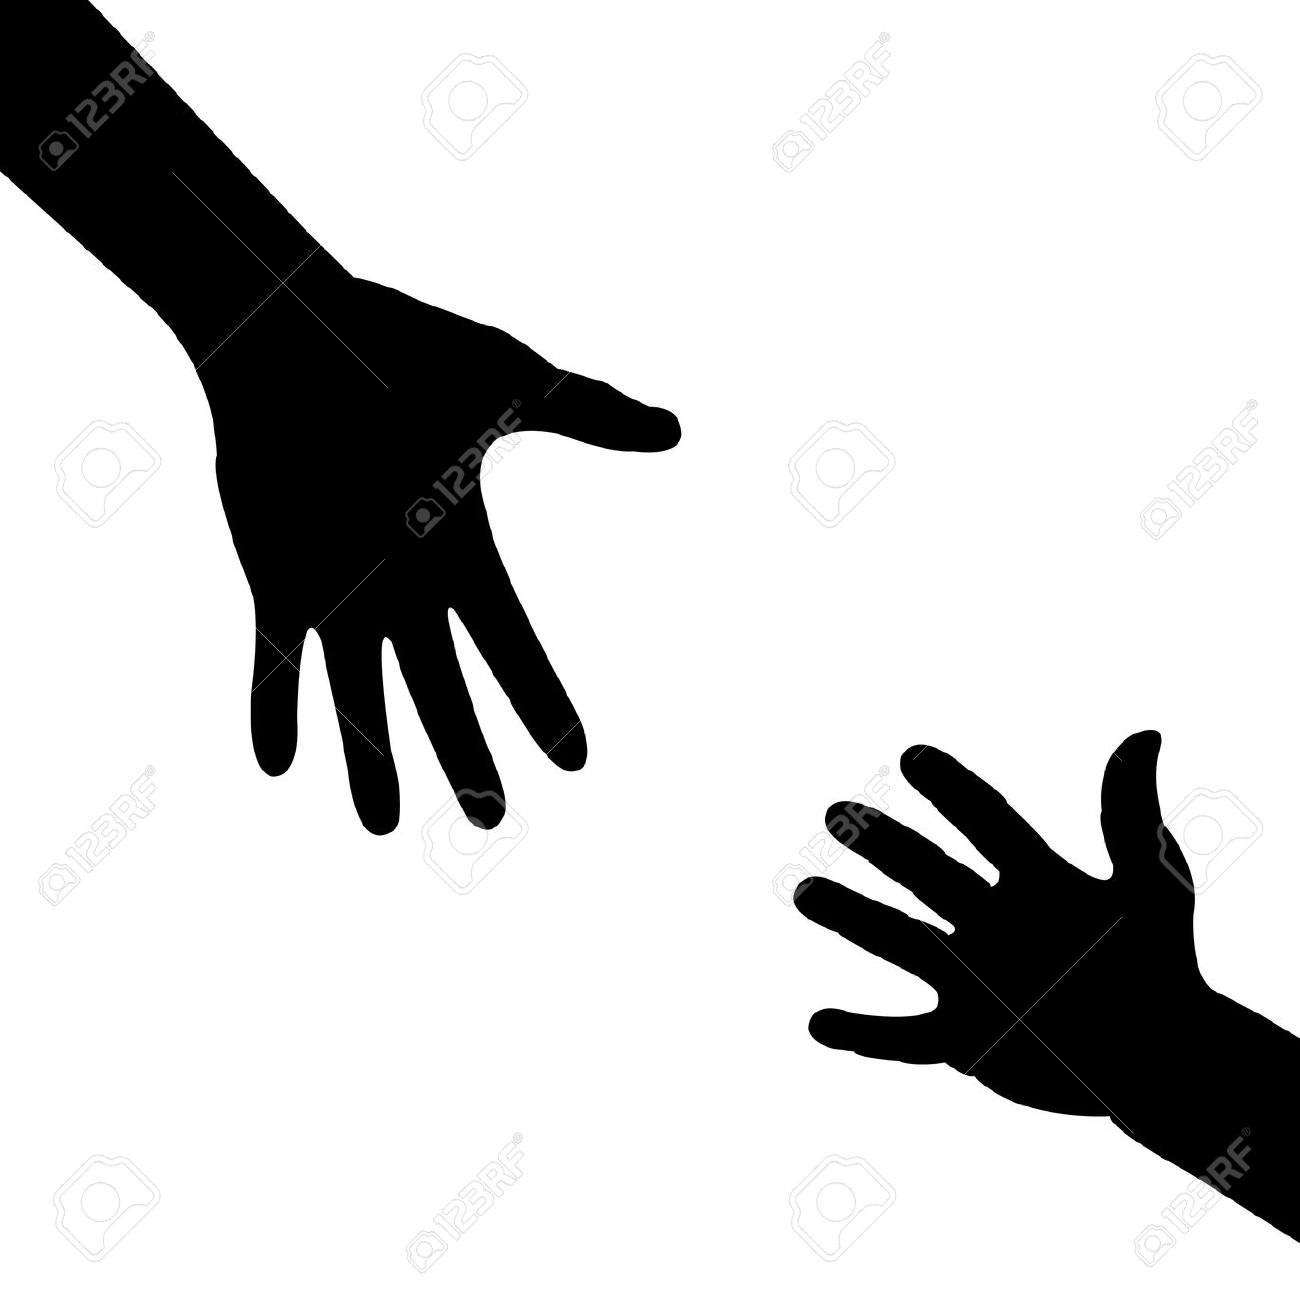 Reach clipart Reaching Hand Clipart Symbol reaching clipart hands Two